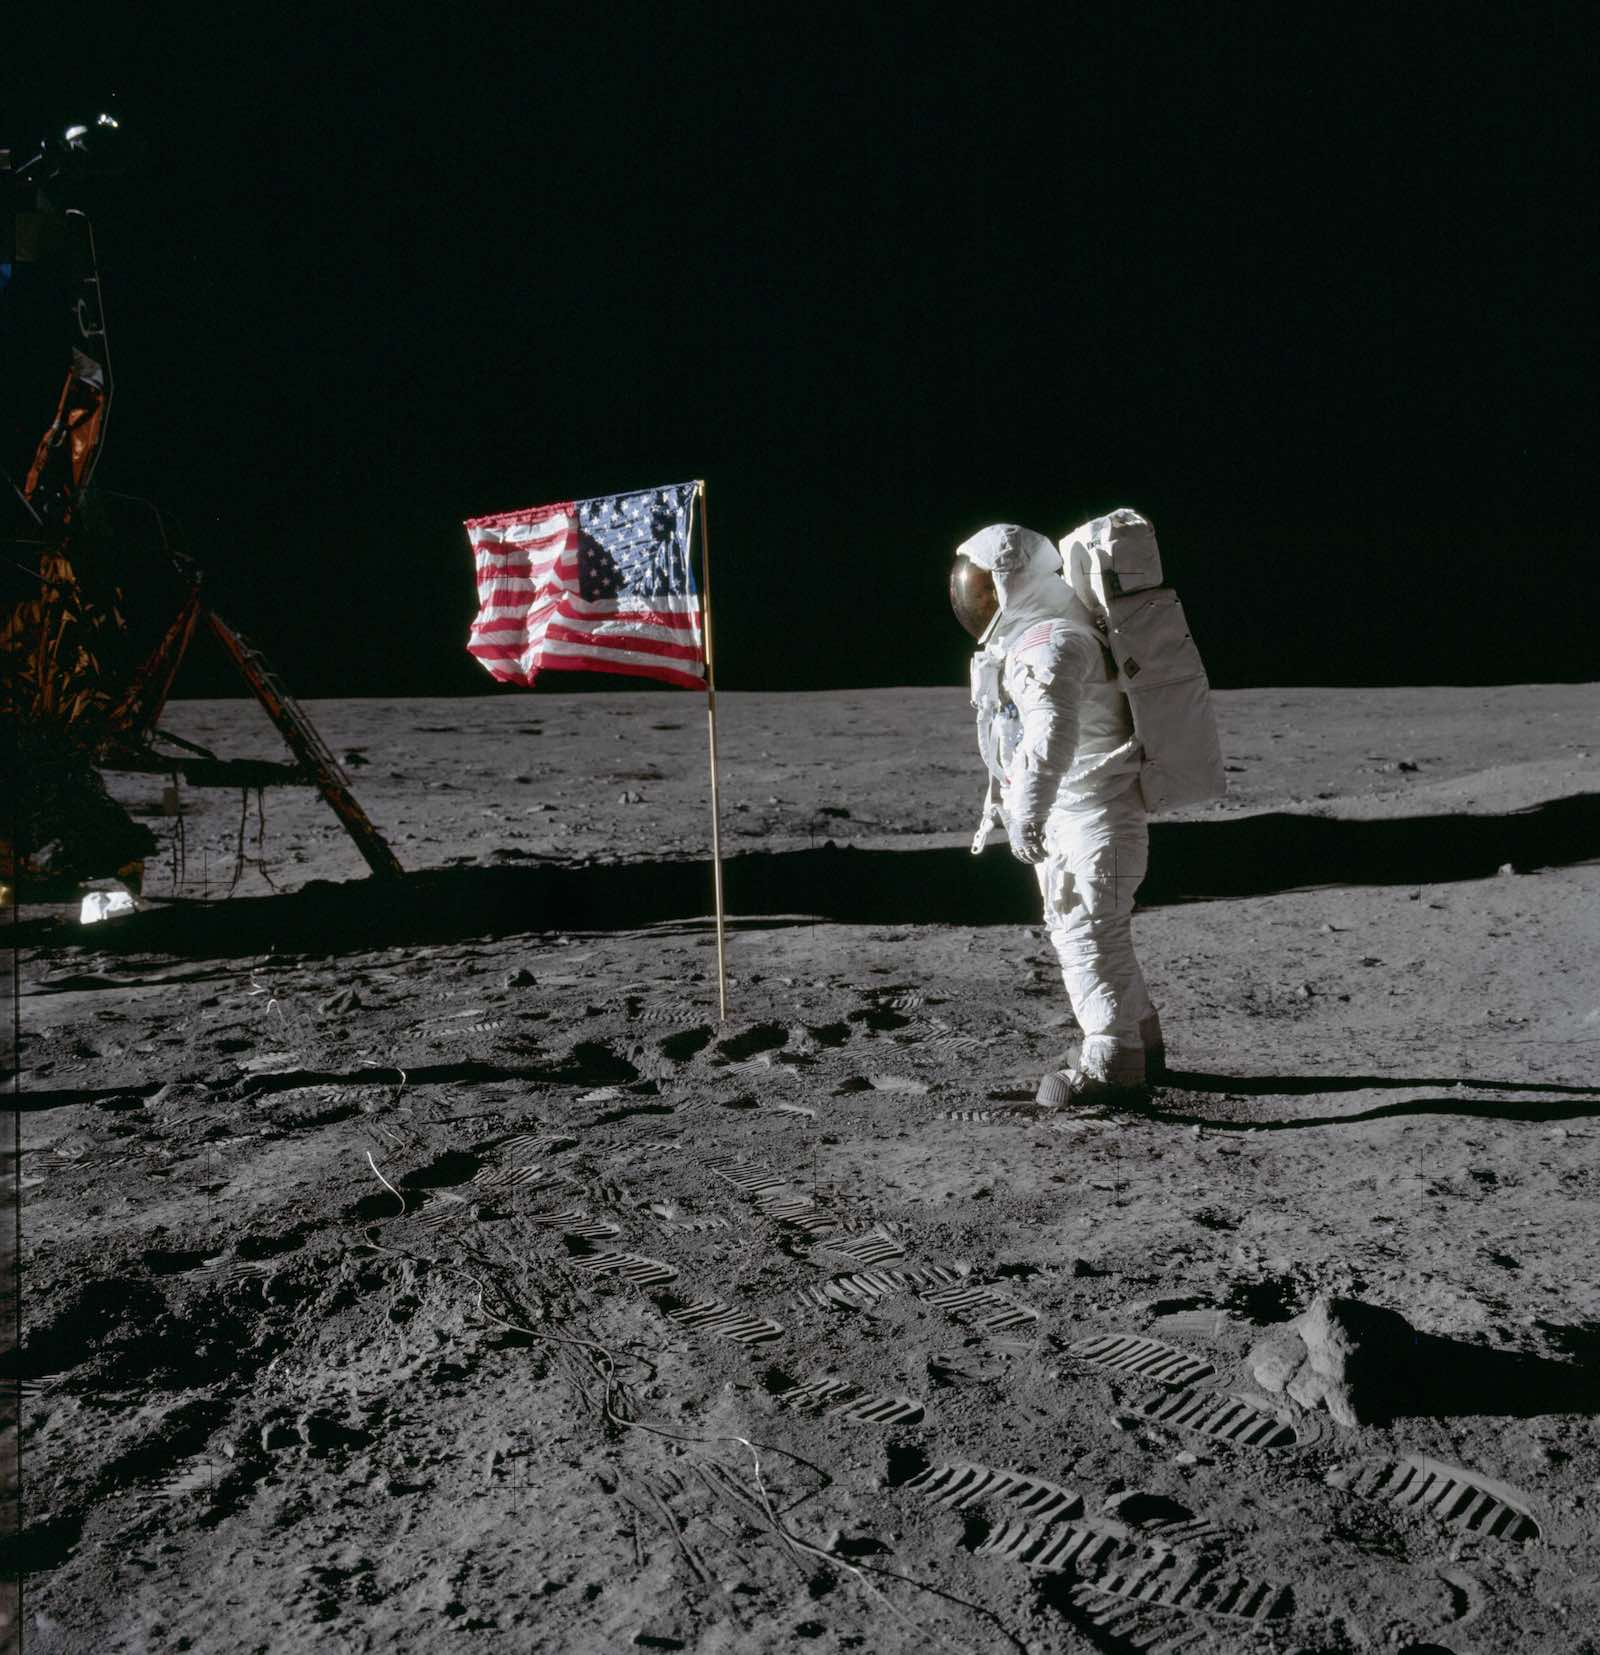 """Astronaut Edwin """"Buzz"""" Aldrin poses for photograph beside US flag on the surface of the Moon in 1969 (Photo: NASA Johnson/Flickr)"""